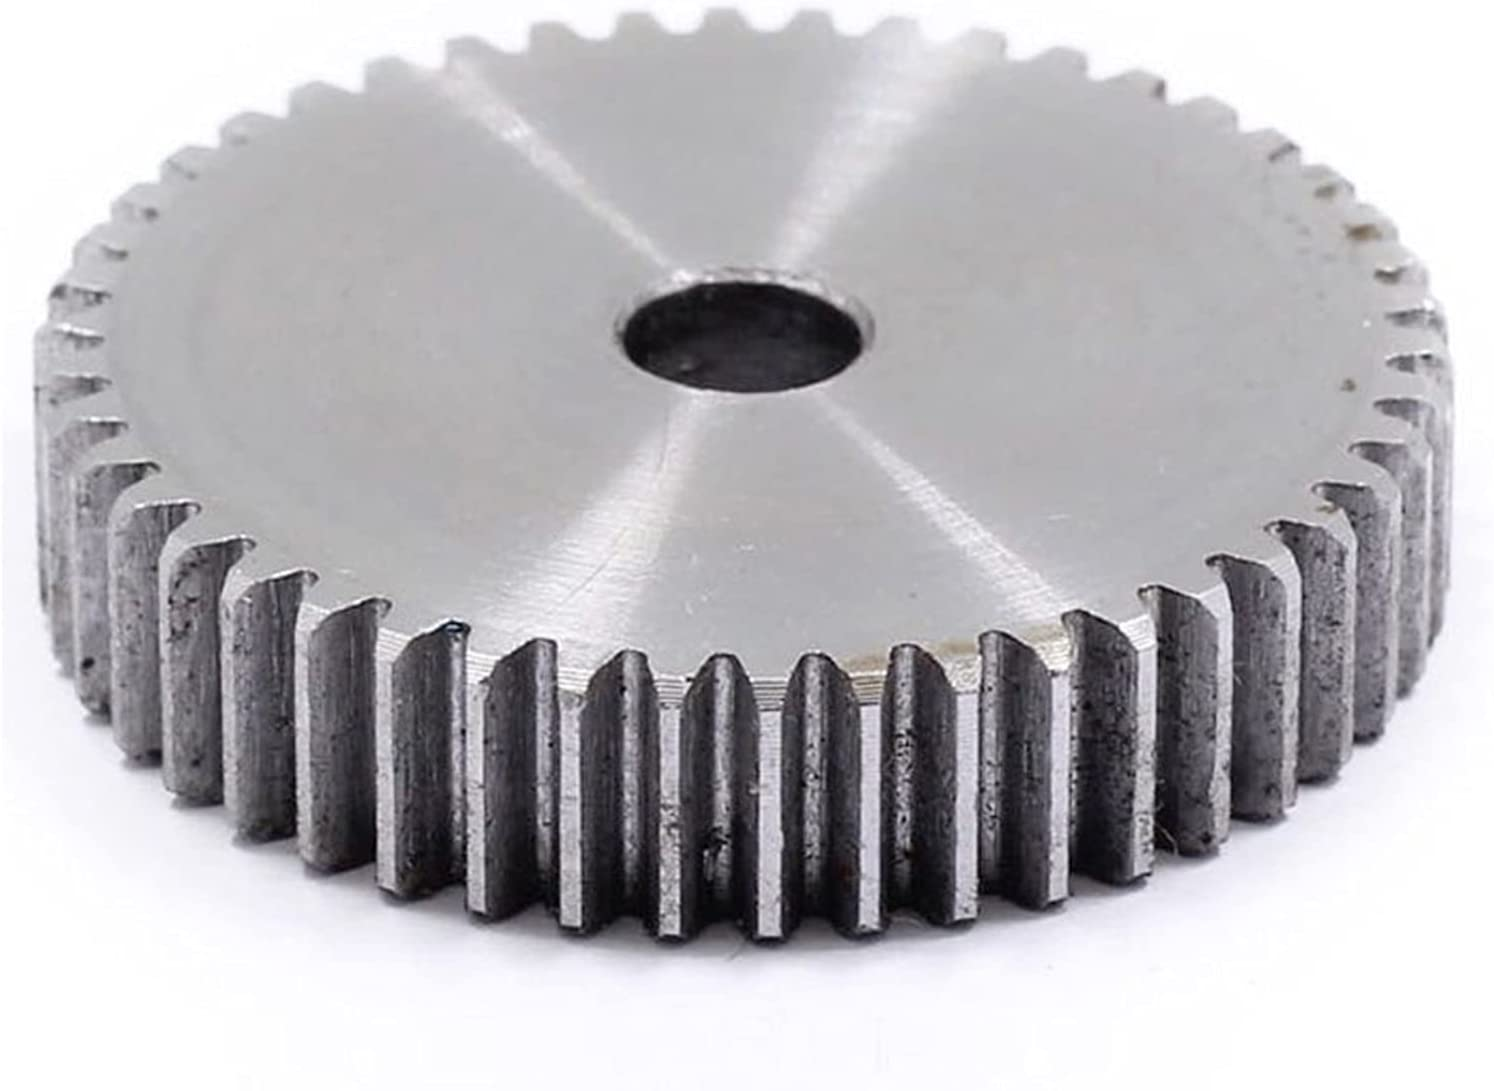 LXIAOBO-G 1M 65Teeth OFFicial shop Rack Spur Industry Precision Gear Baltimore Mall Machinery